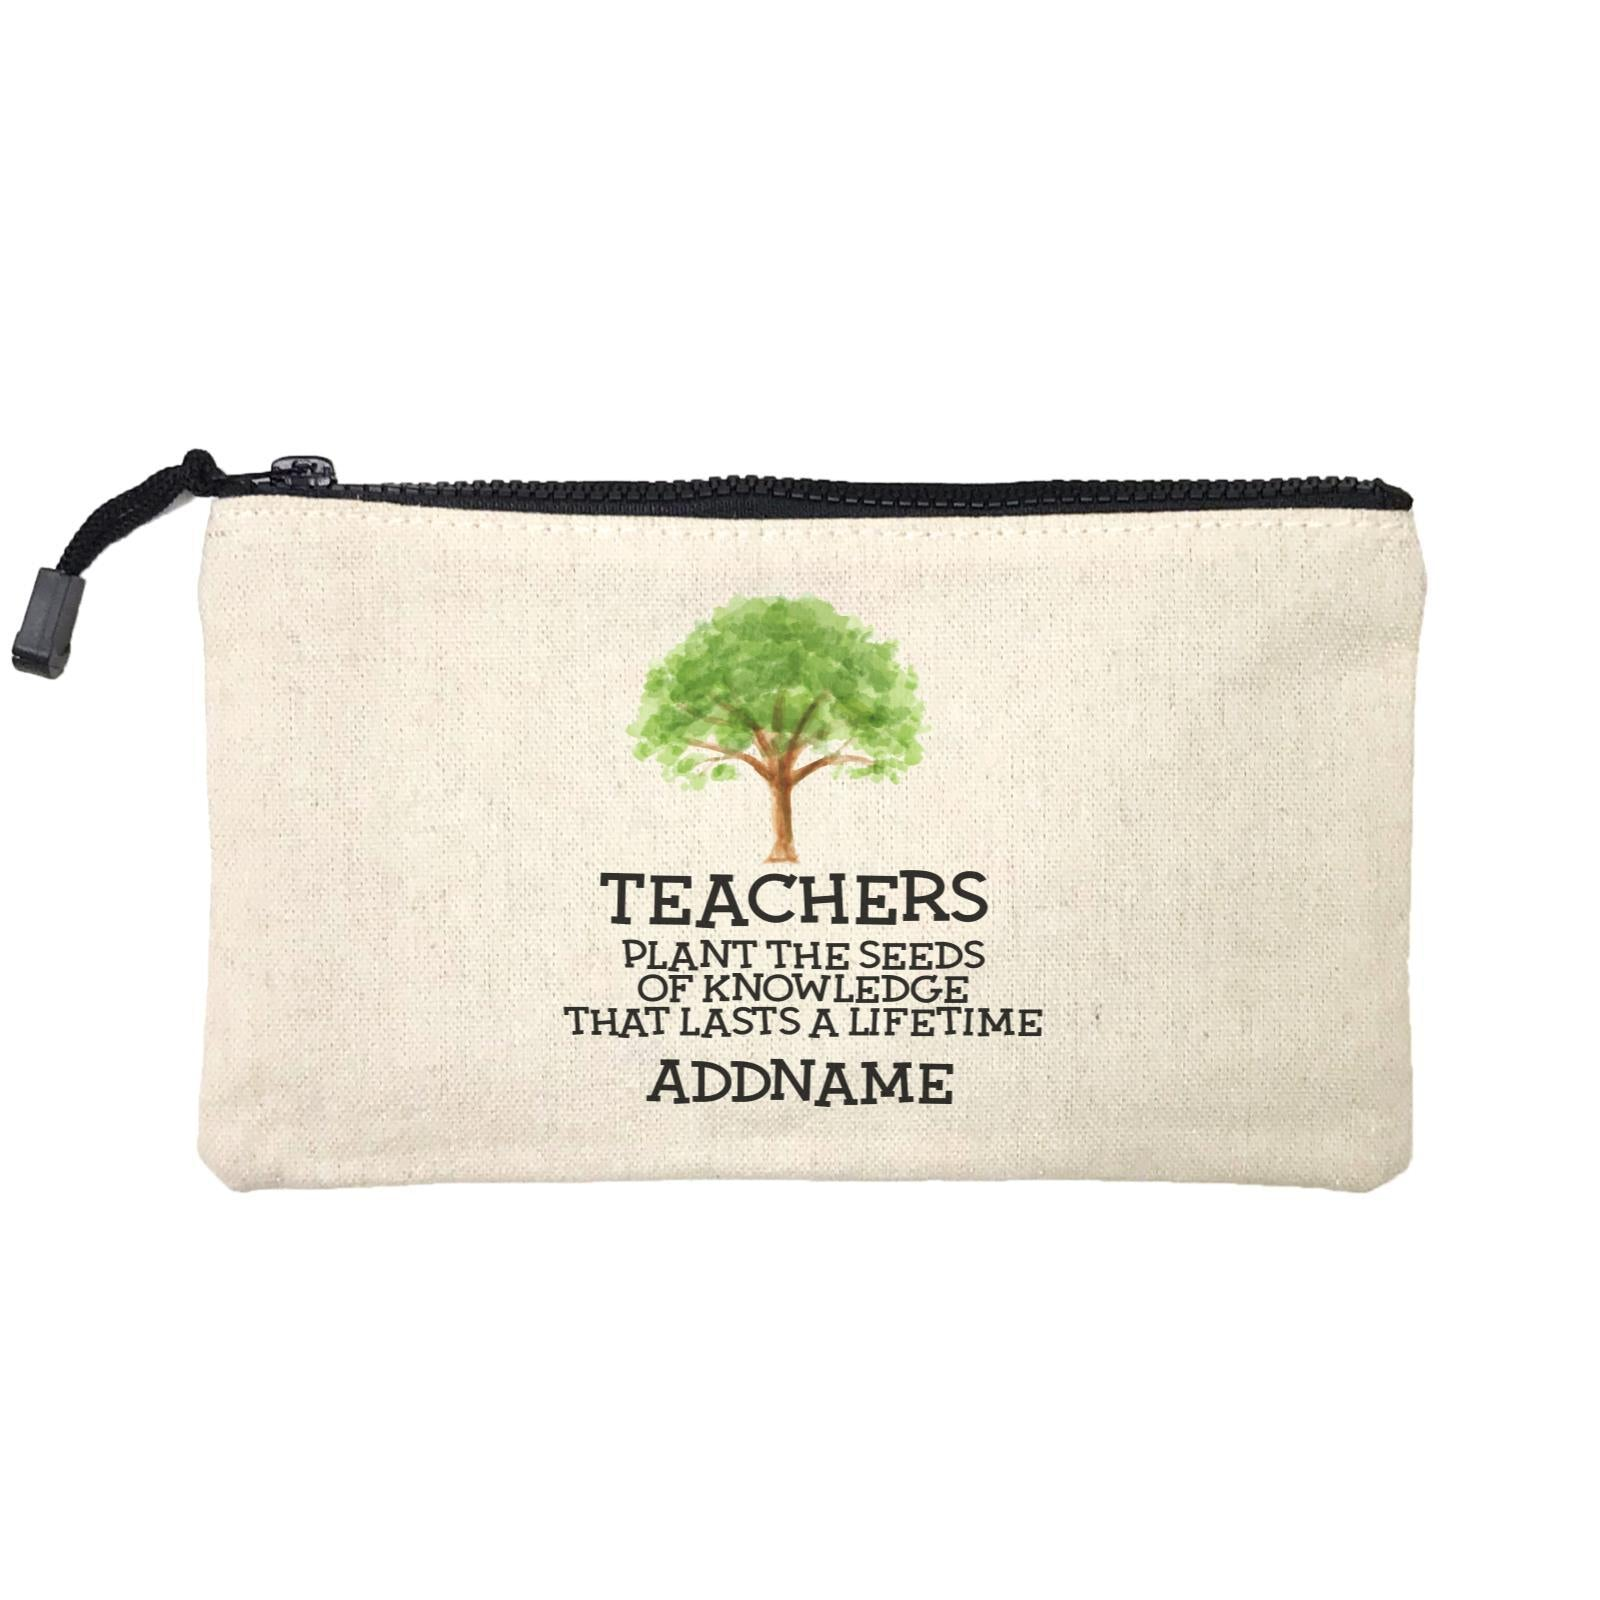 Teacher Quotes 2 Teachers Plant The Seeds Of Knowledge That Lasts A Lifetime Addname Mini Accessories Stationery Pouch